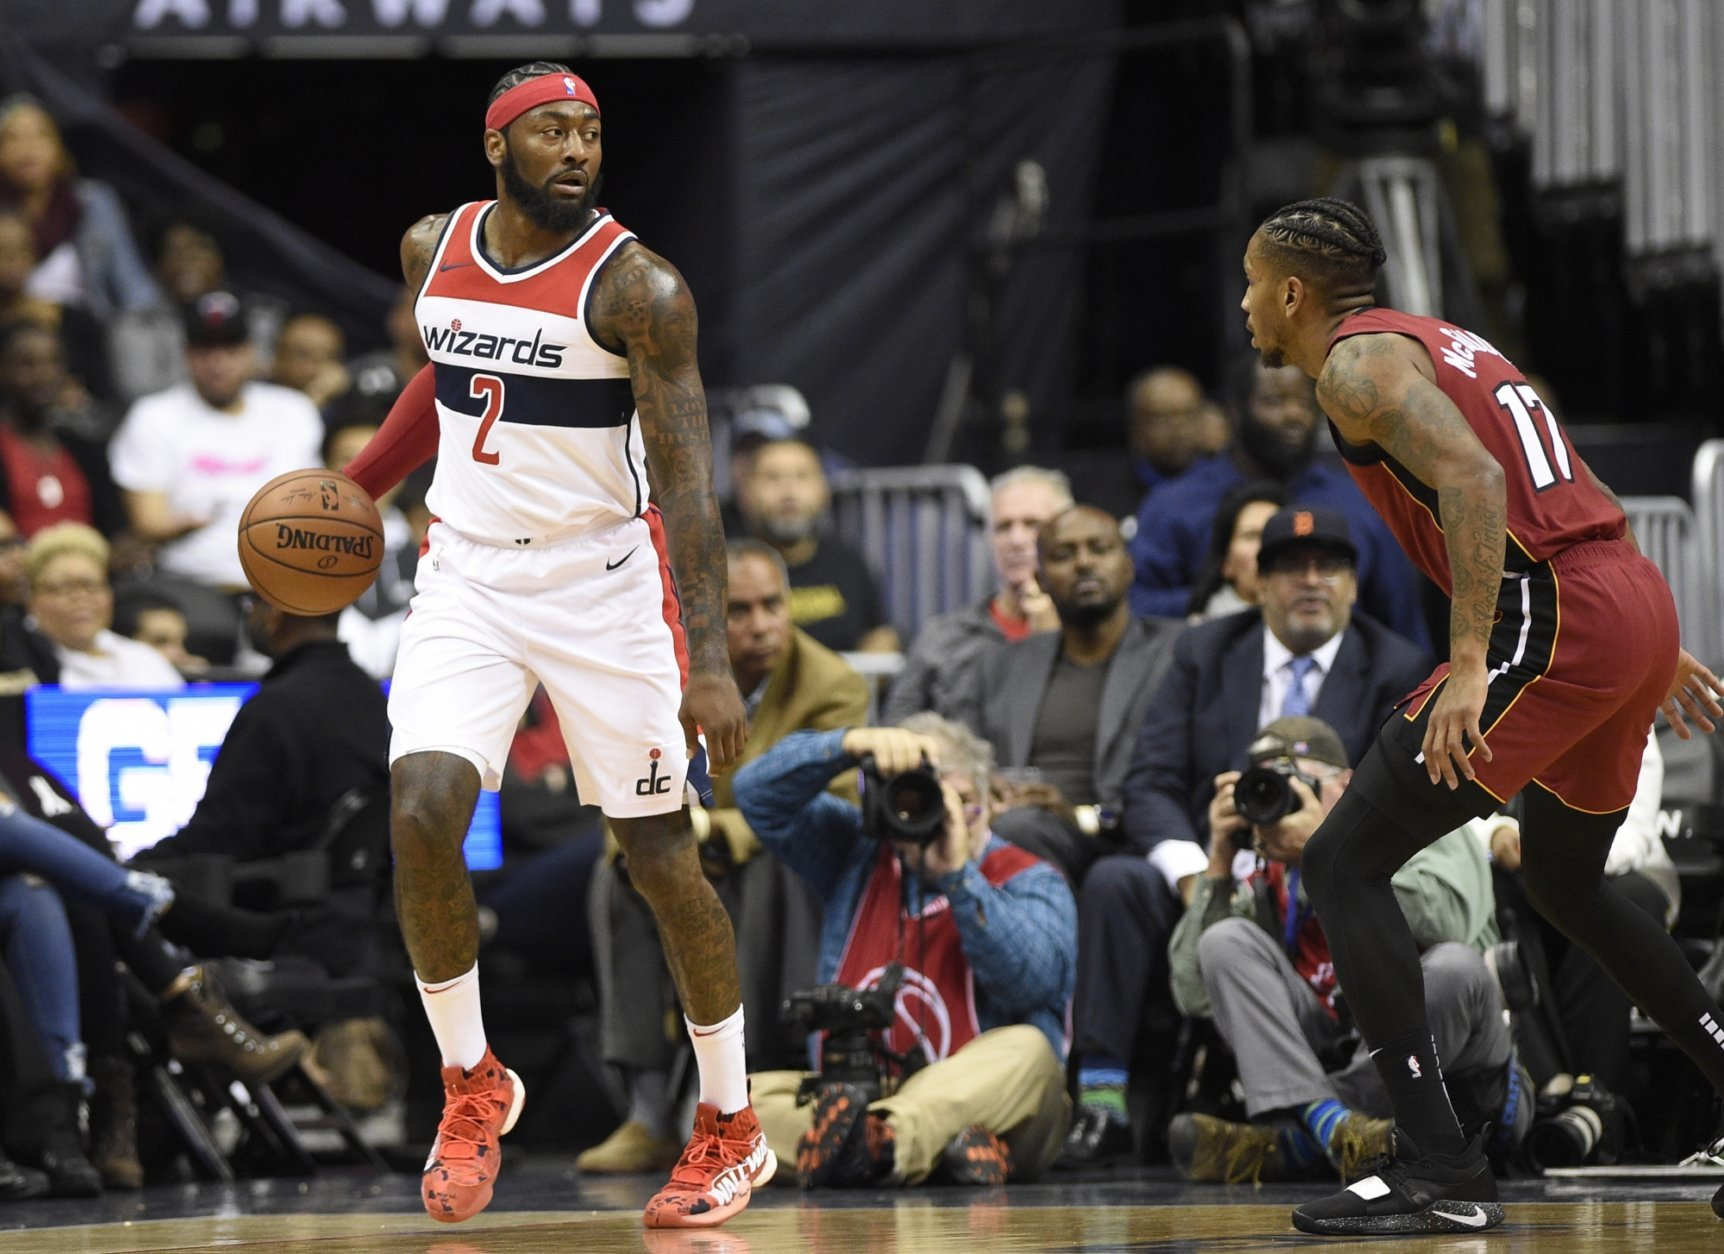 Washington Wizards guard John Wall (2) dribbles the ball against Miami Heat guard Rodney McGruder (17) during the first half of an NBA basketball game, Thursday, Oct. 18, 2018, in Washington. (AP Photo/Nick Wass)